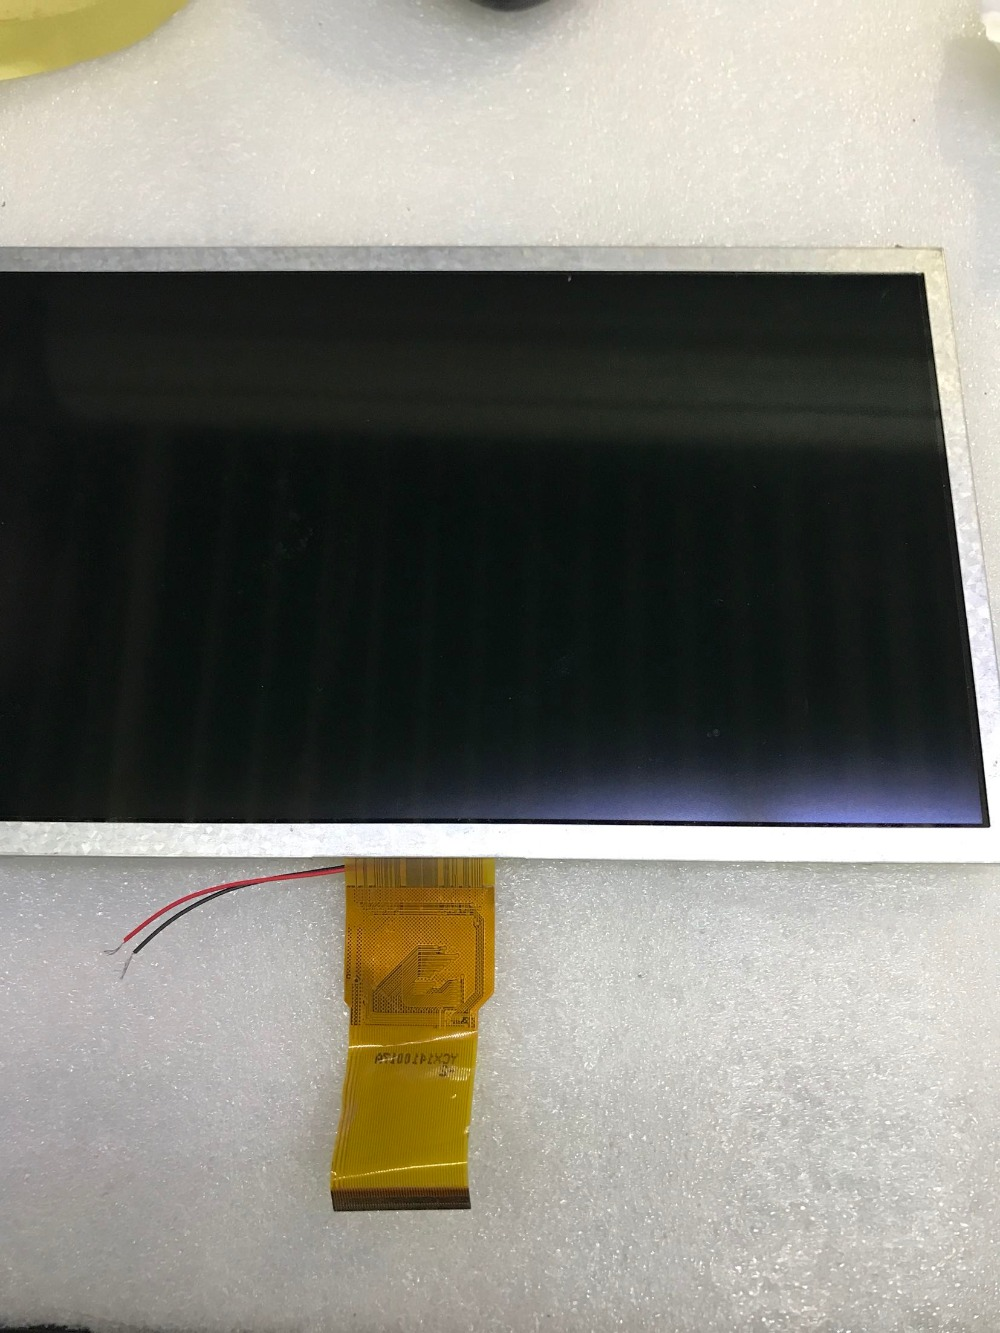 original new 10.1 inch LCD screen cable number: A1012850FPCF-1 free shipping original 7 inch lcd screen cable number tkr7030b a 30ppin width 105cm 165cm